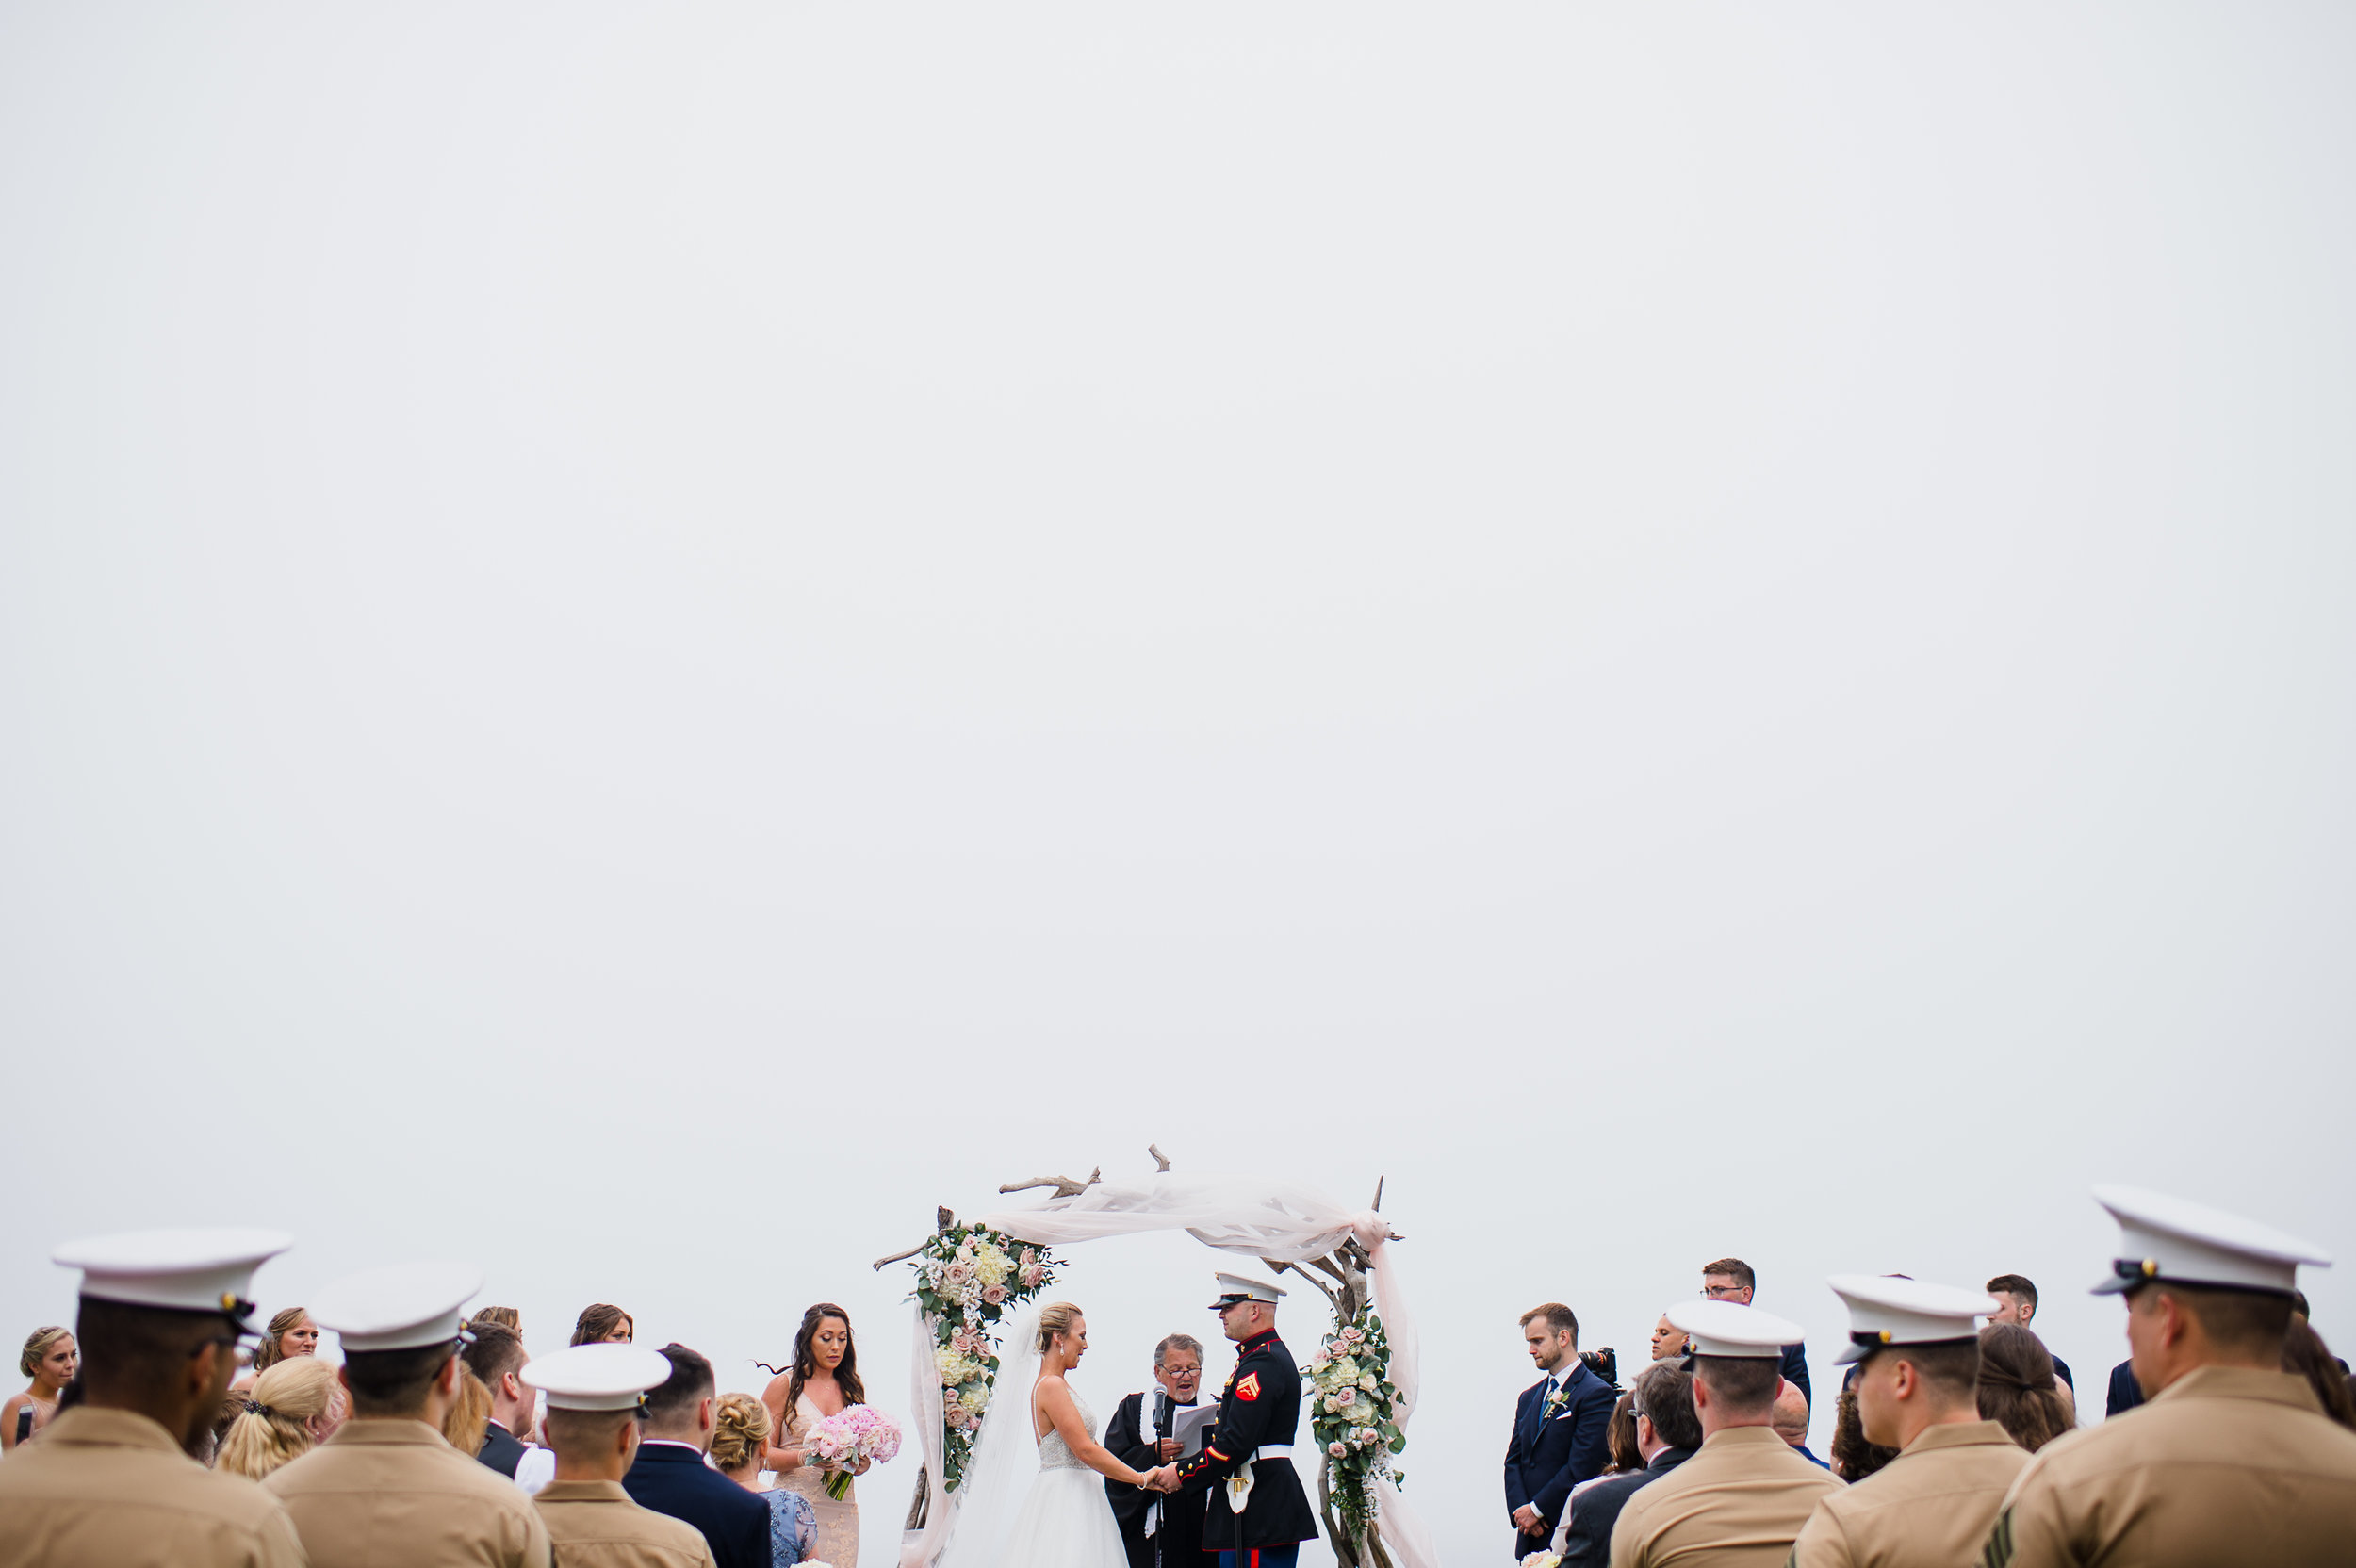 oceanview-of-nahant-wedding-004.JPG